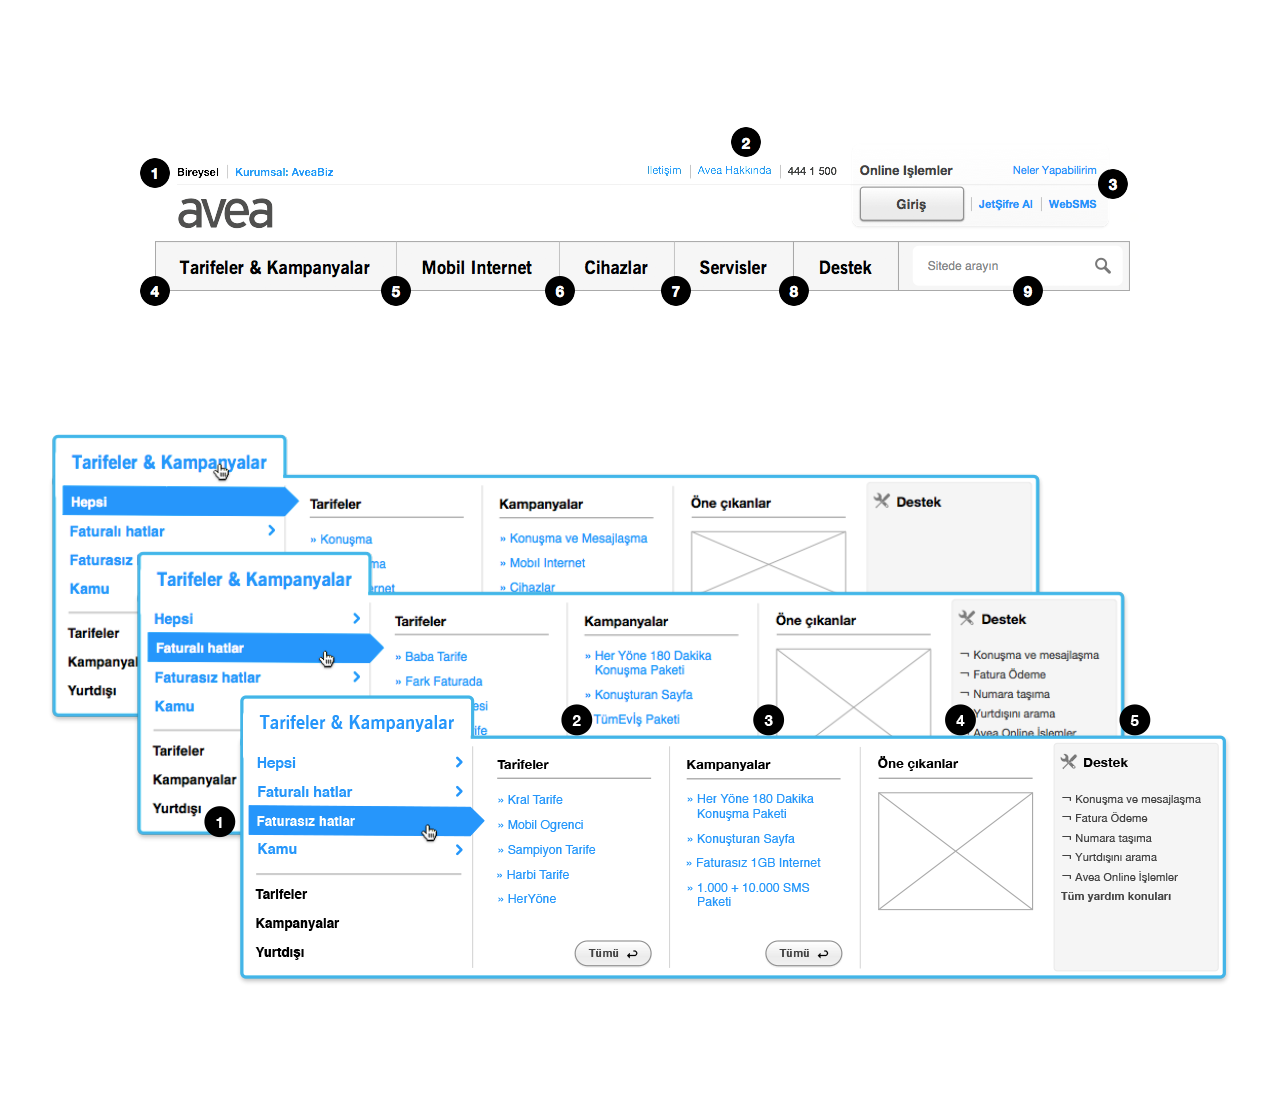 Defined off-site and on-site sections, created a mega drop-down allowing to navigate deep down in product & service hierarchies meeting both business and user goals.